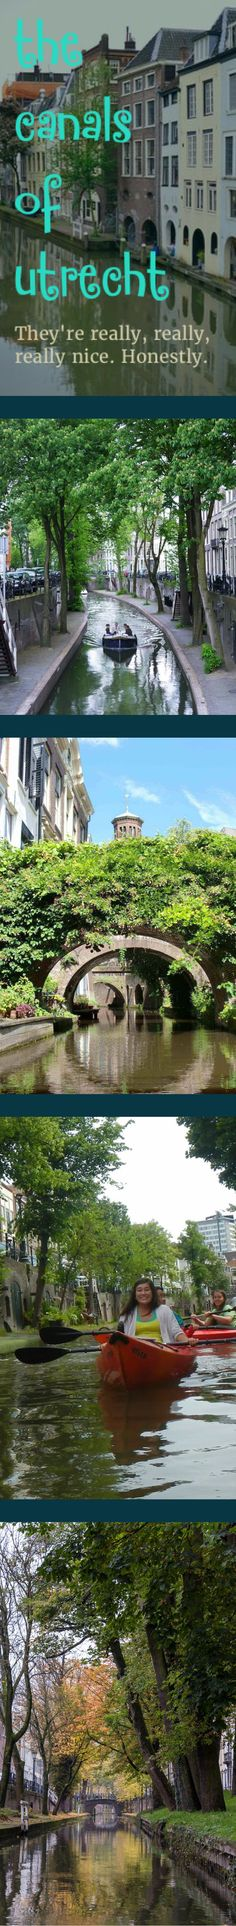 The canals of Utrecht. Honestly very nice indeed.